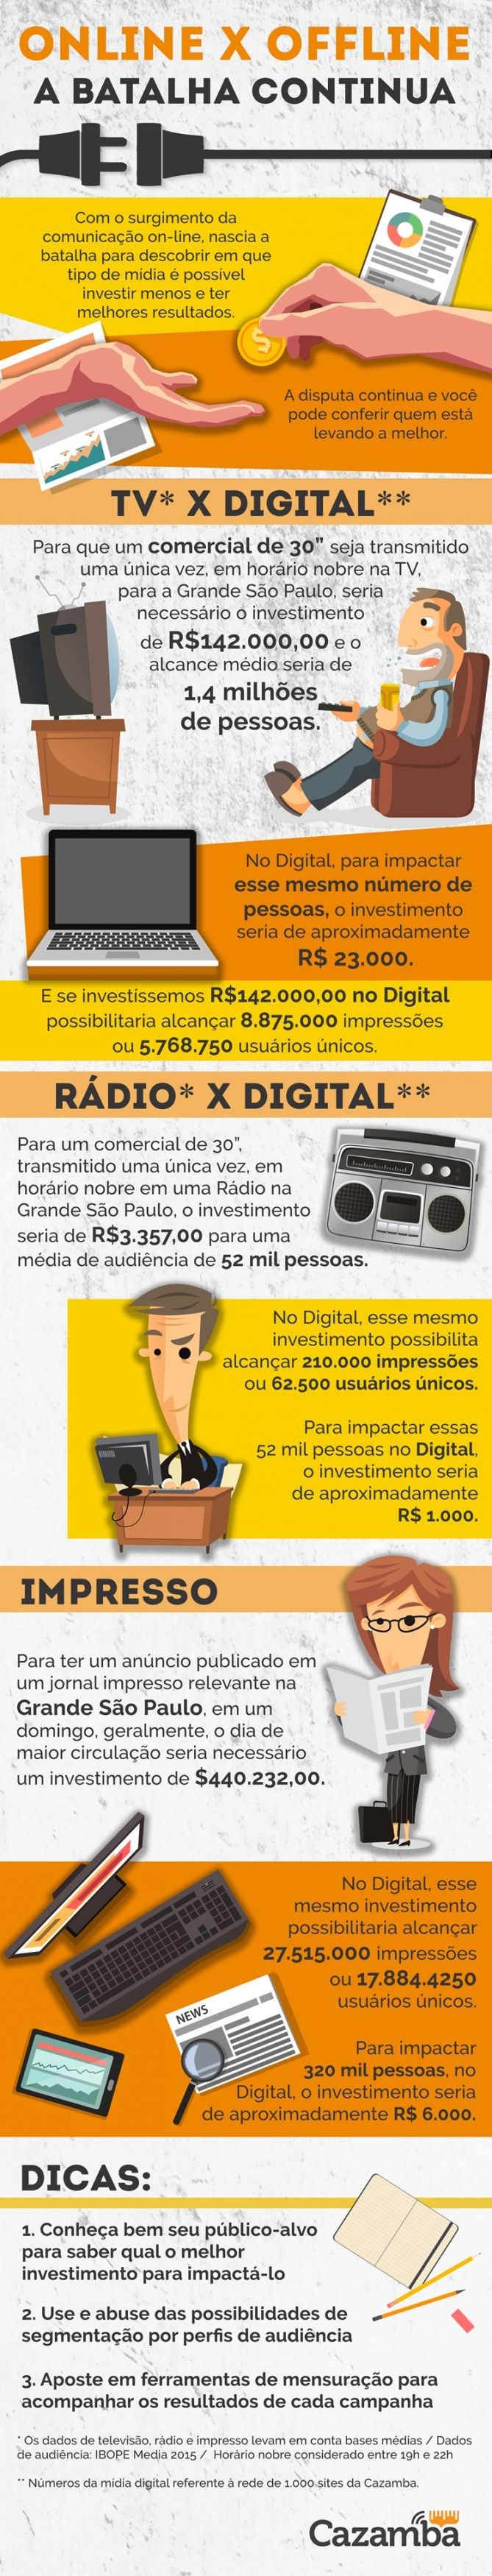 infográfico marketing online x offline